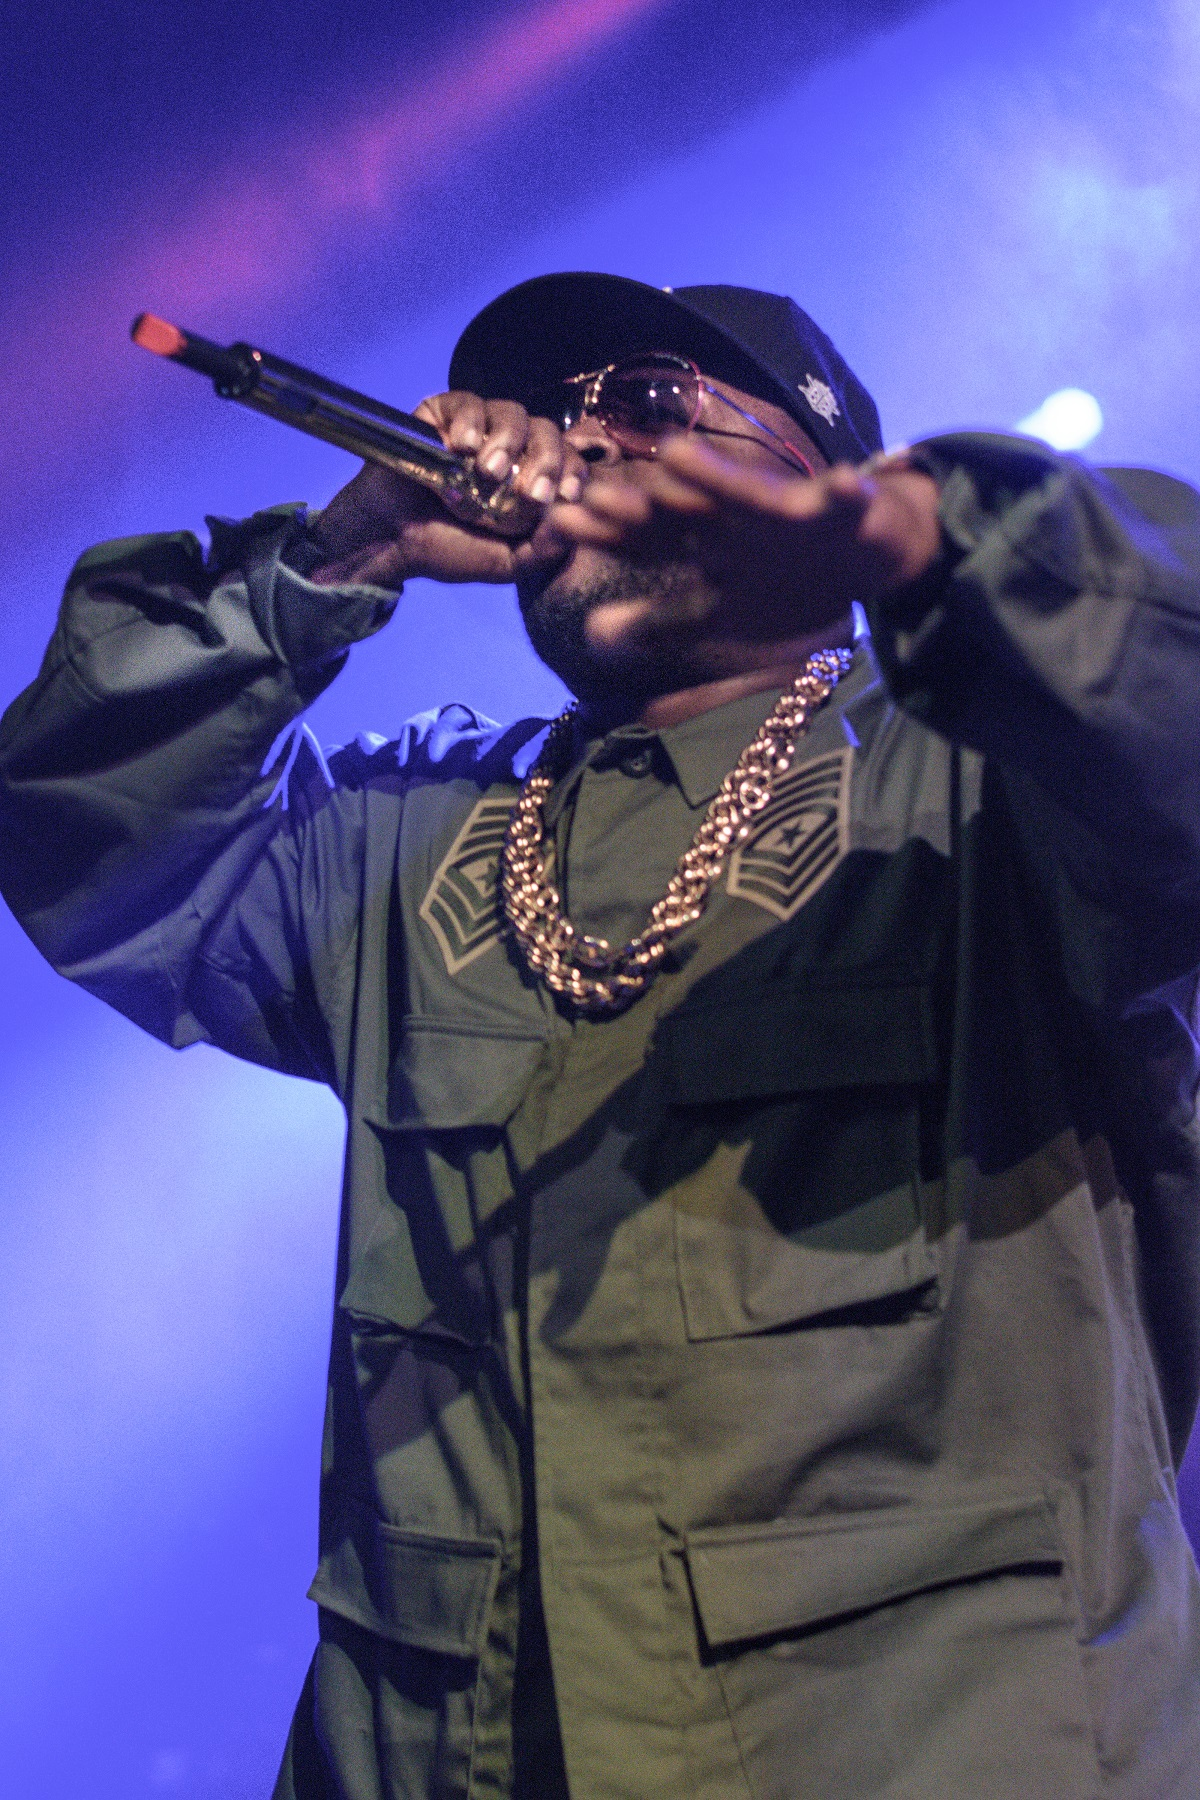 Big Boi brings the old school hype to a freshly picked set list